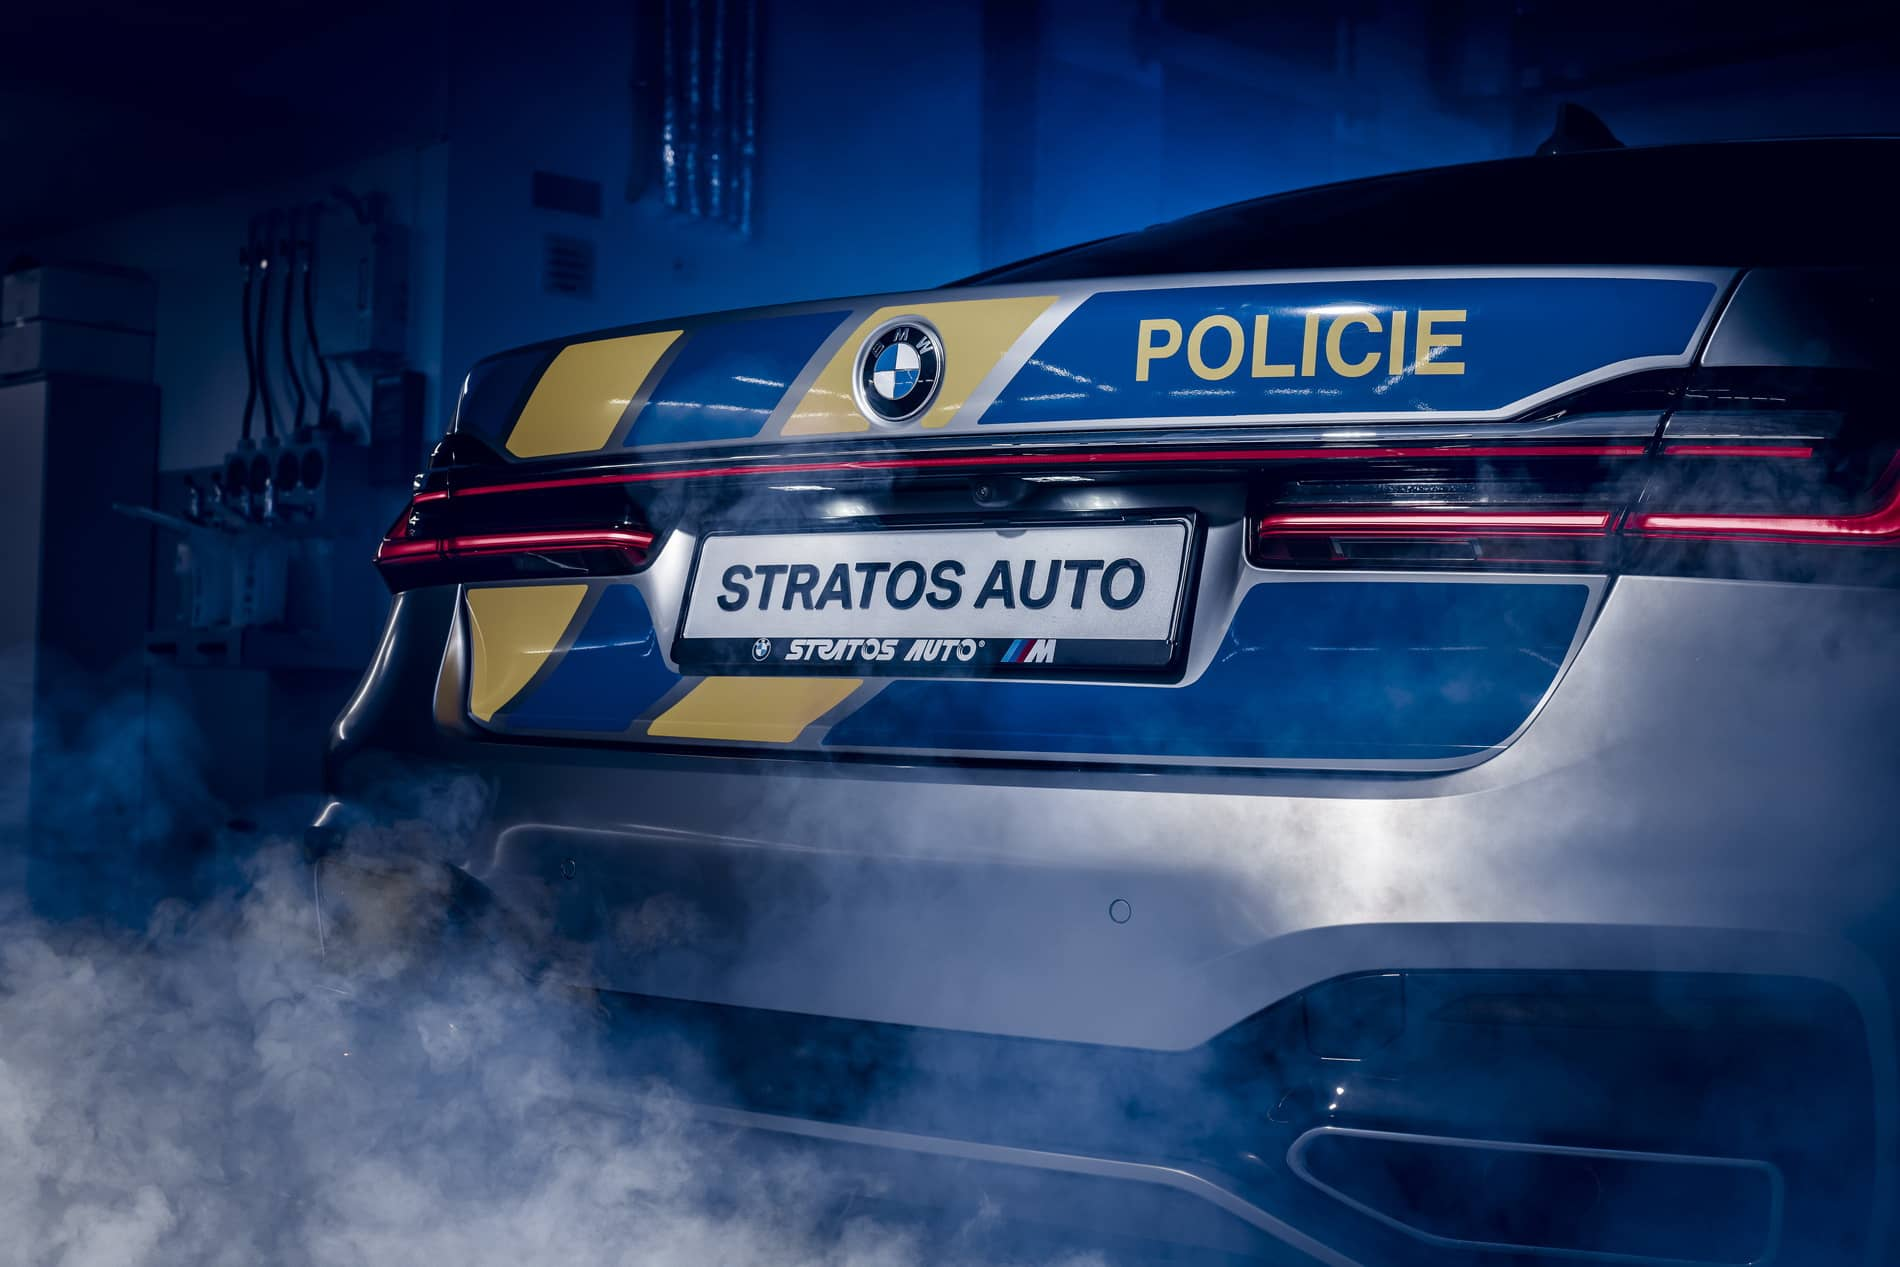 bmw 745le policie_03